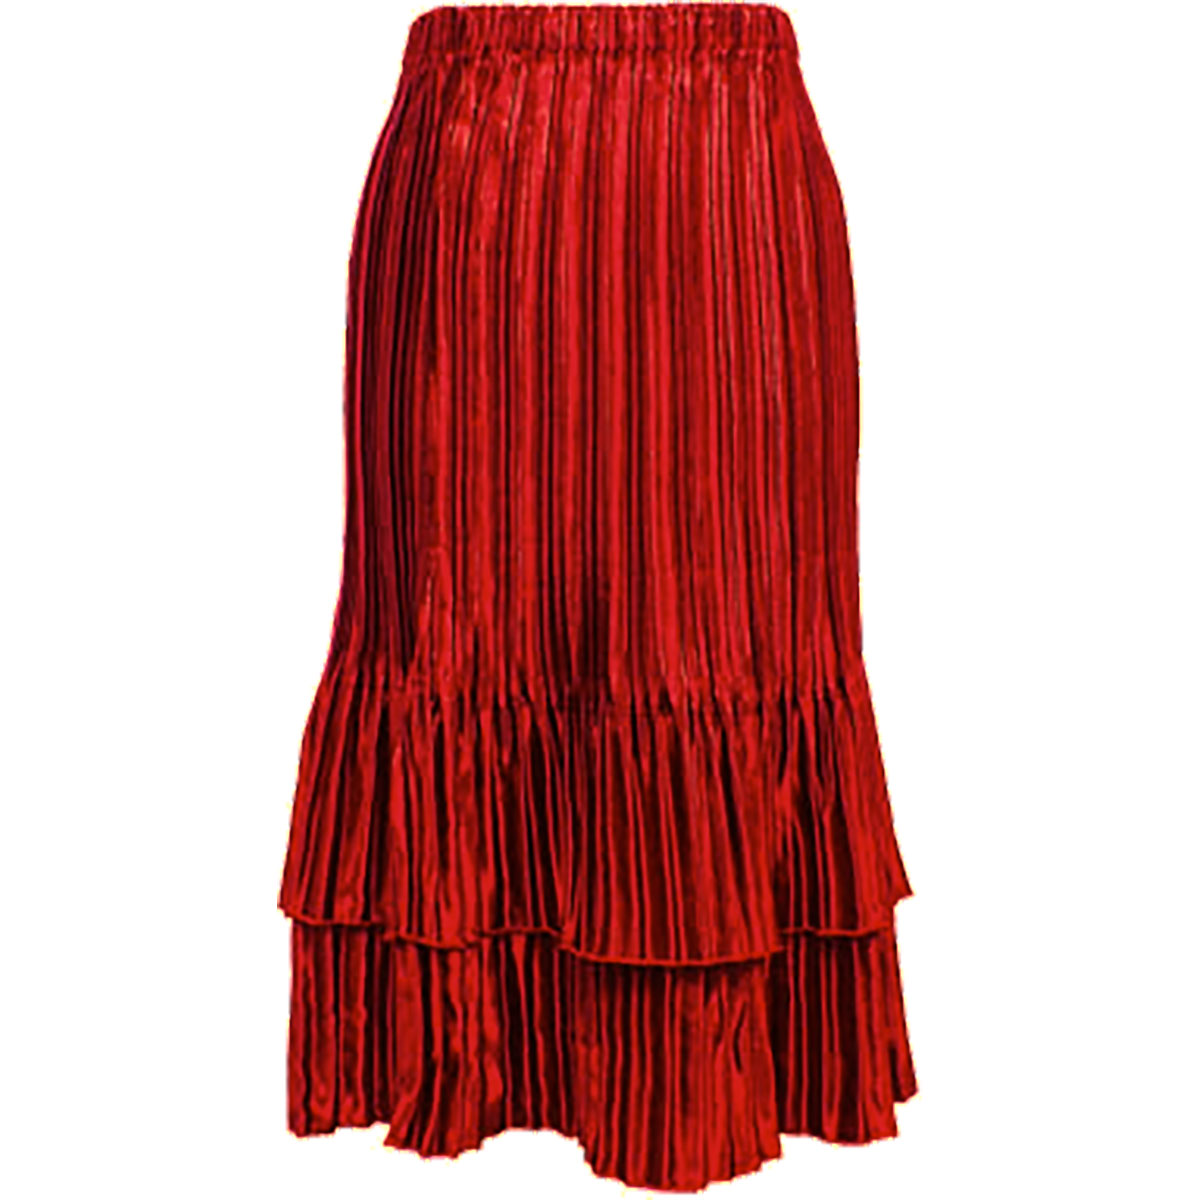 Wholesale Skirts - Satin Mini Pleat Tiered* Solid Red - One Size (S-XL)